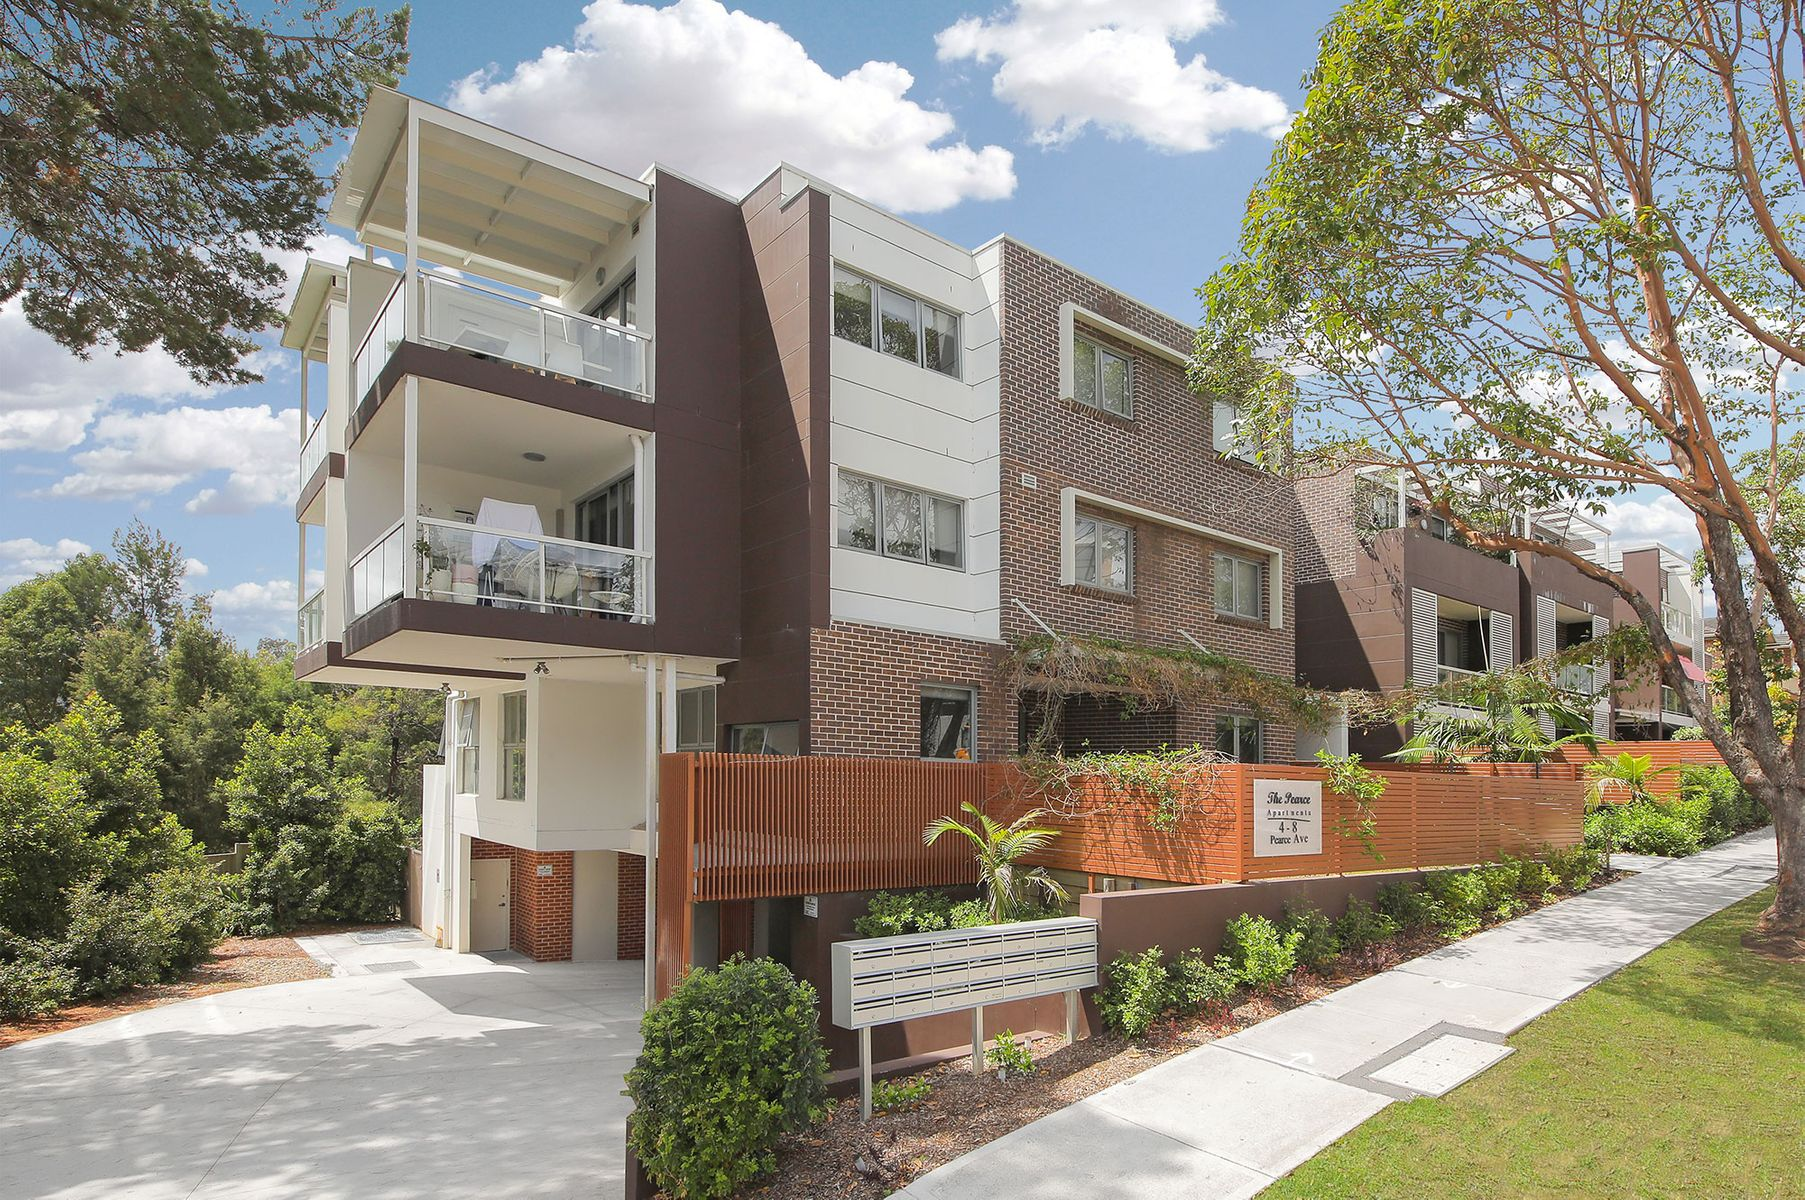 17/4-8 Pearce Avenue, Peakhurst, NSW 2210